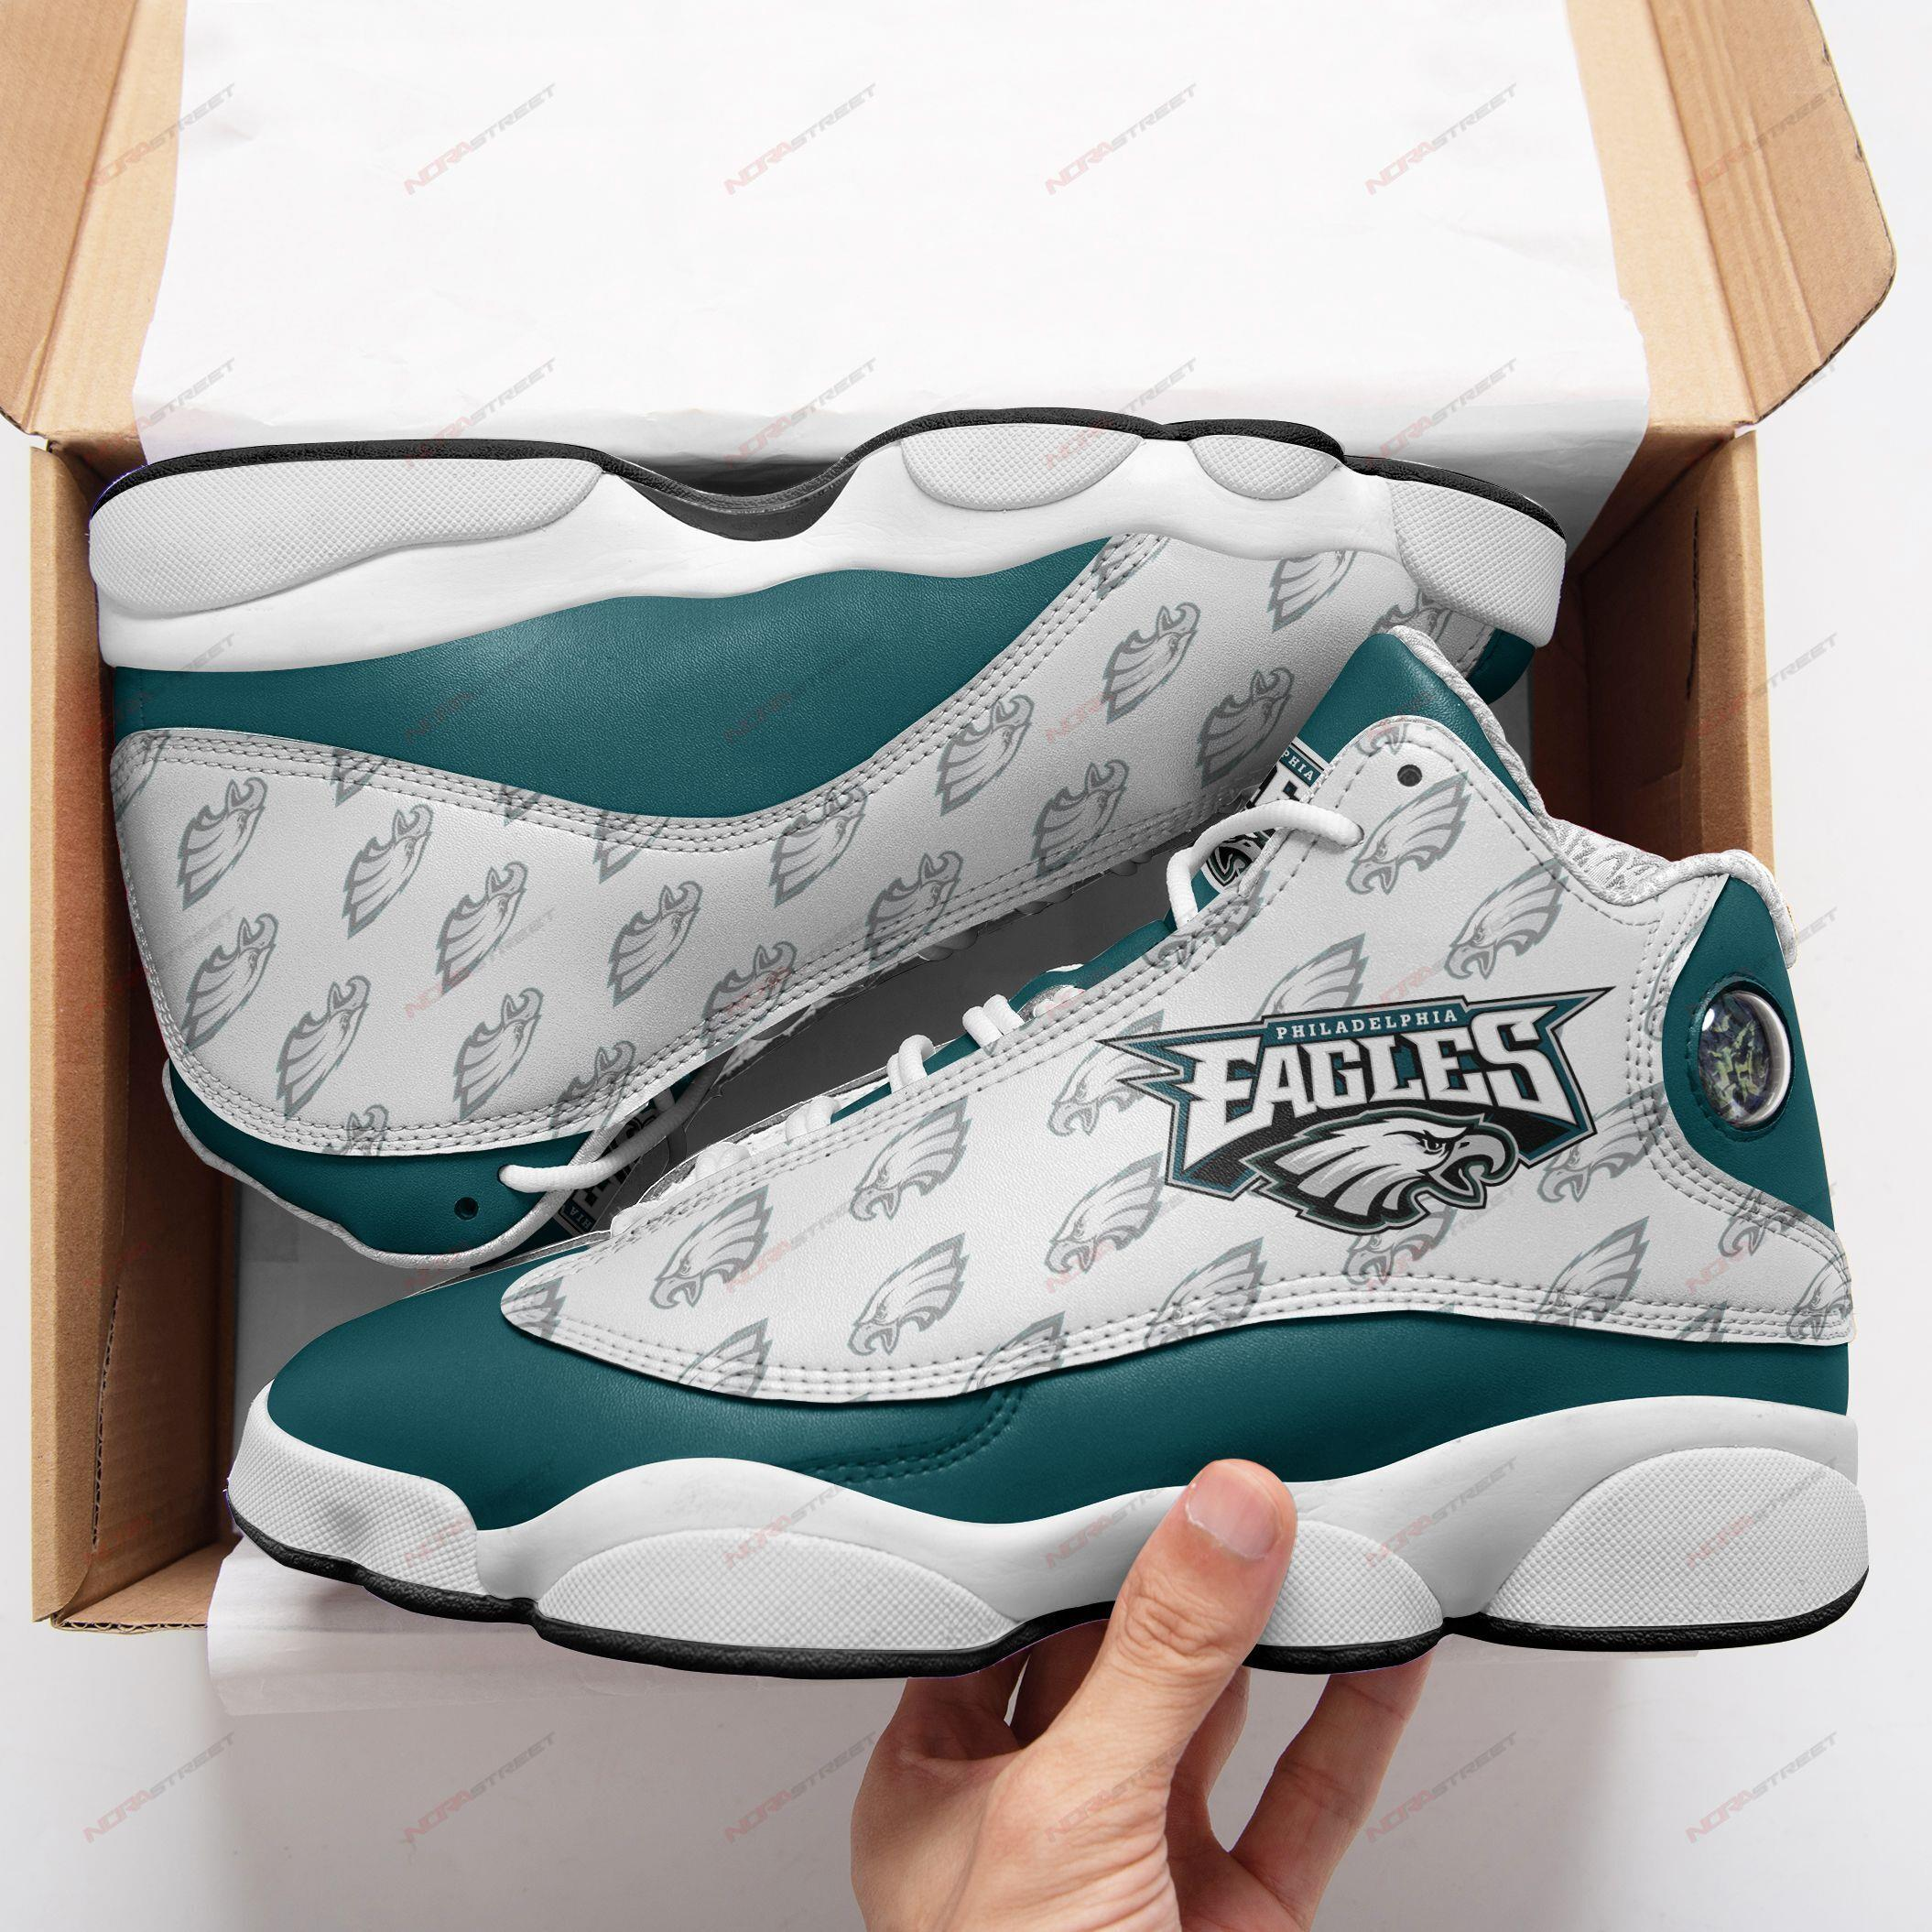 Philadelphia Eagles Air Jordan 13 Sneakers Sport Shoes Full Size